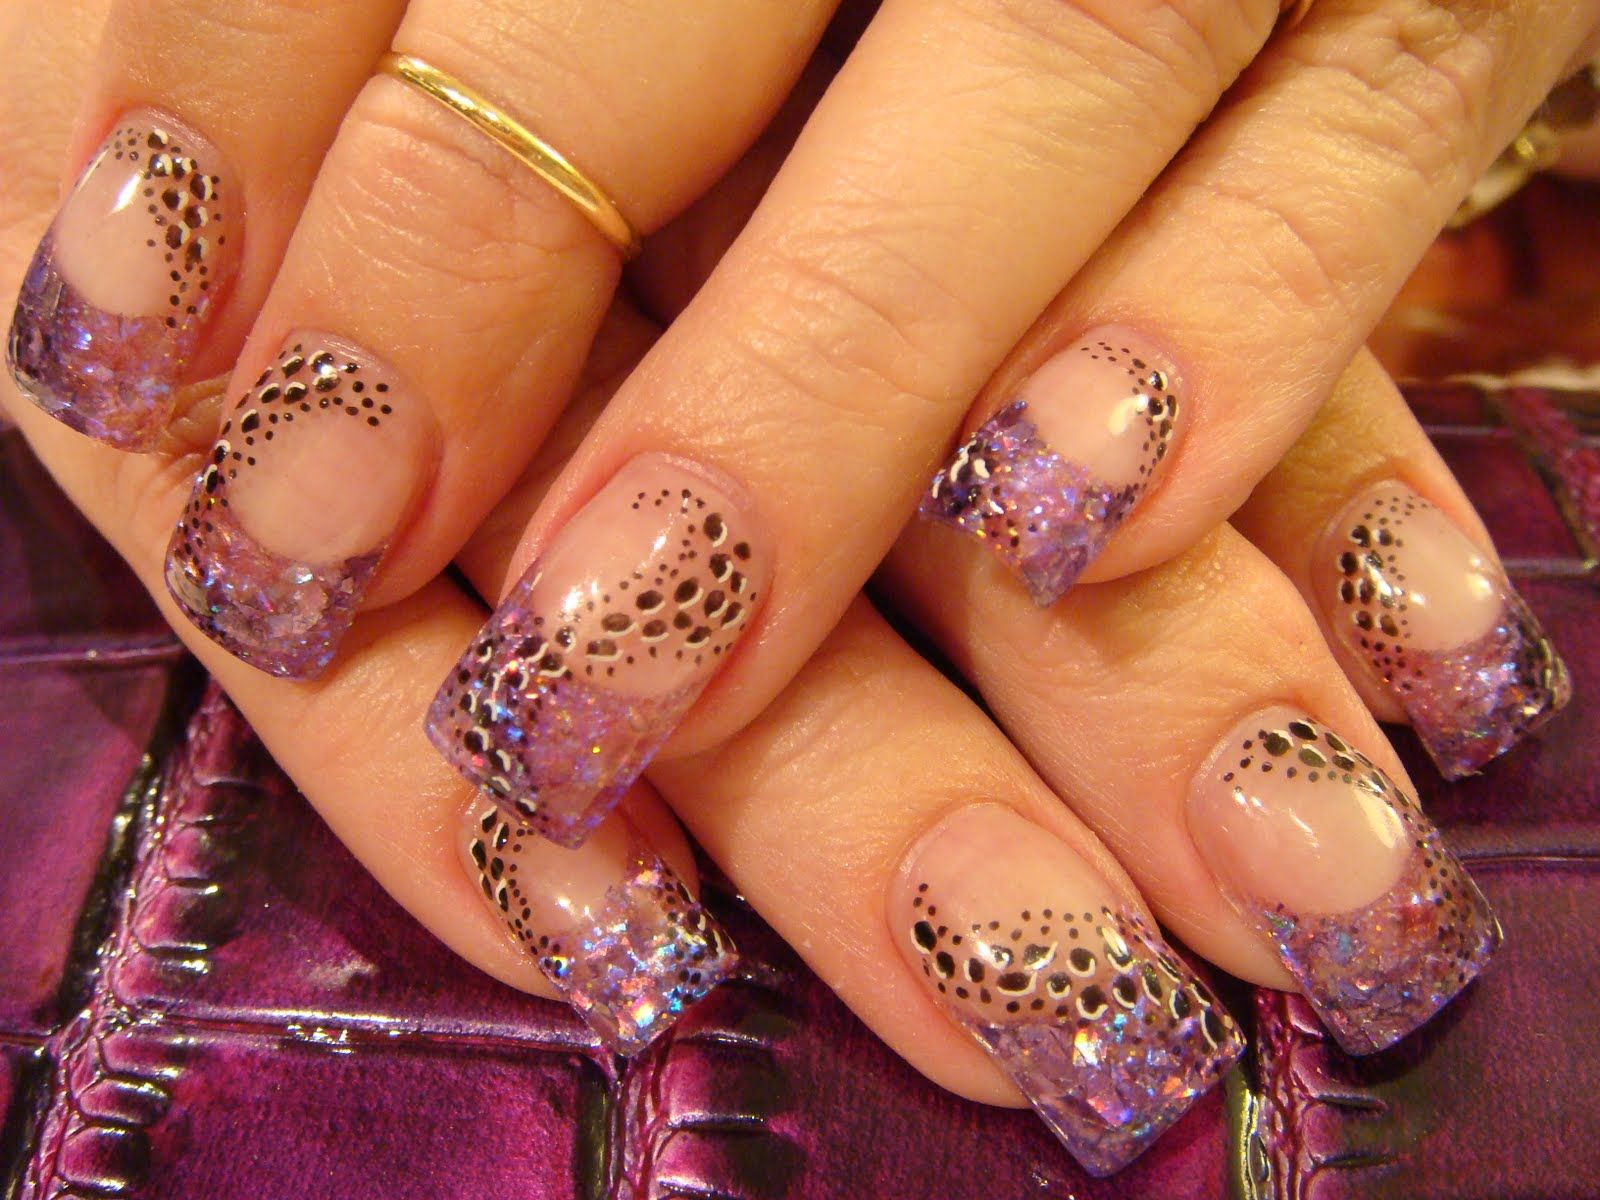 Fingernails Designs Idea 50 gel nails designs that are all your fingertips need to steal the show Inspiring Acrylic Nail Designs Ideas